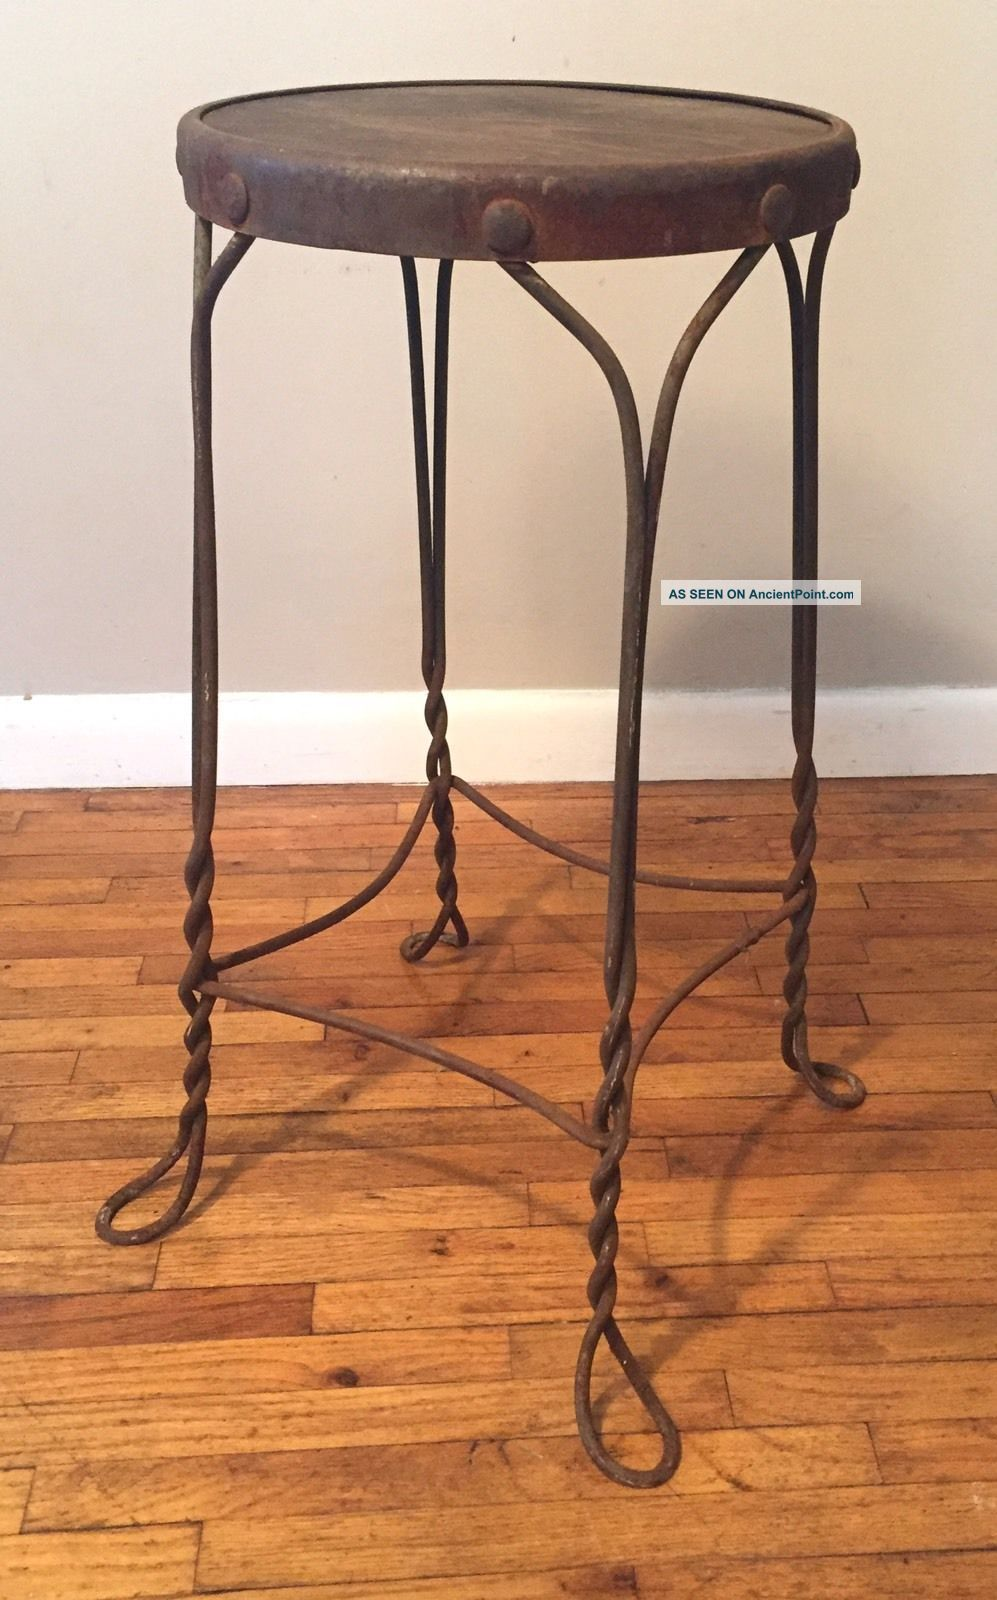 Vintage Twisted Wire Ice Cream Shop Cafe Stool Steampunk Metal Wood Wrought Iron 1900-1950 photo